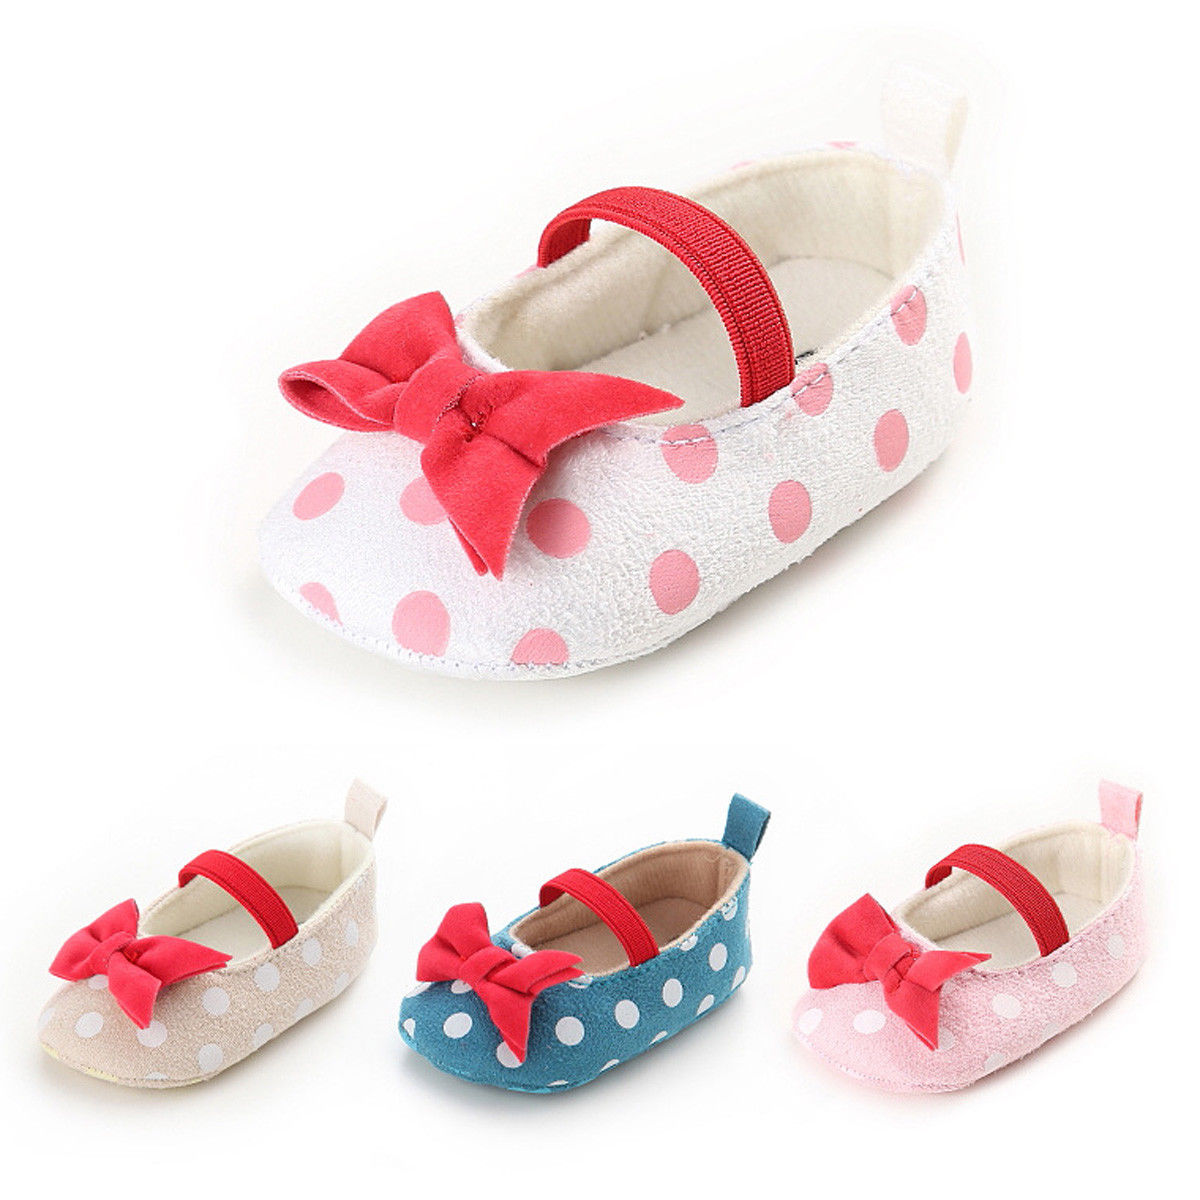 Spring Summer Infant Baby Kids Girl Soft Sole Princess Bowknot Shoes Girl Toddler Crib Moccasin Shoes